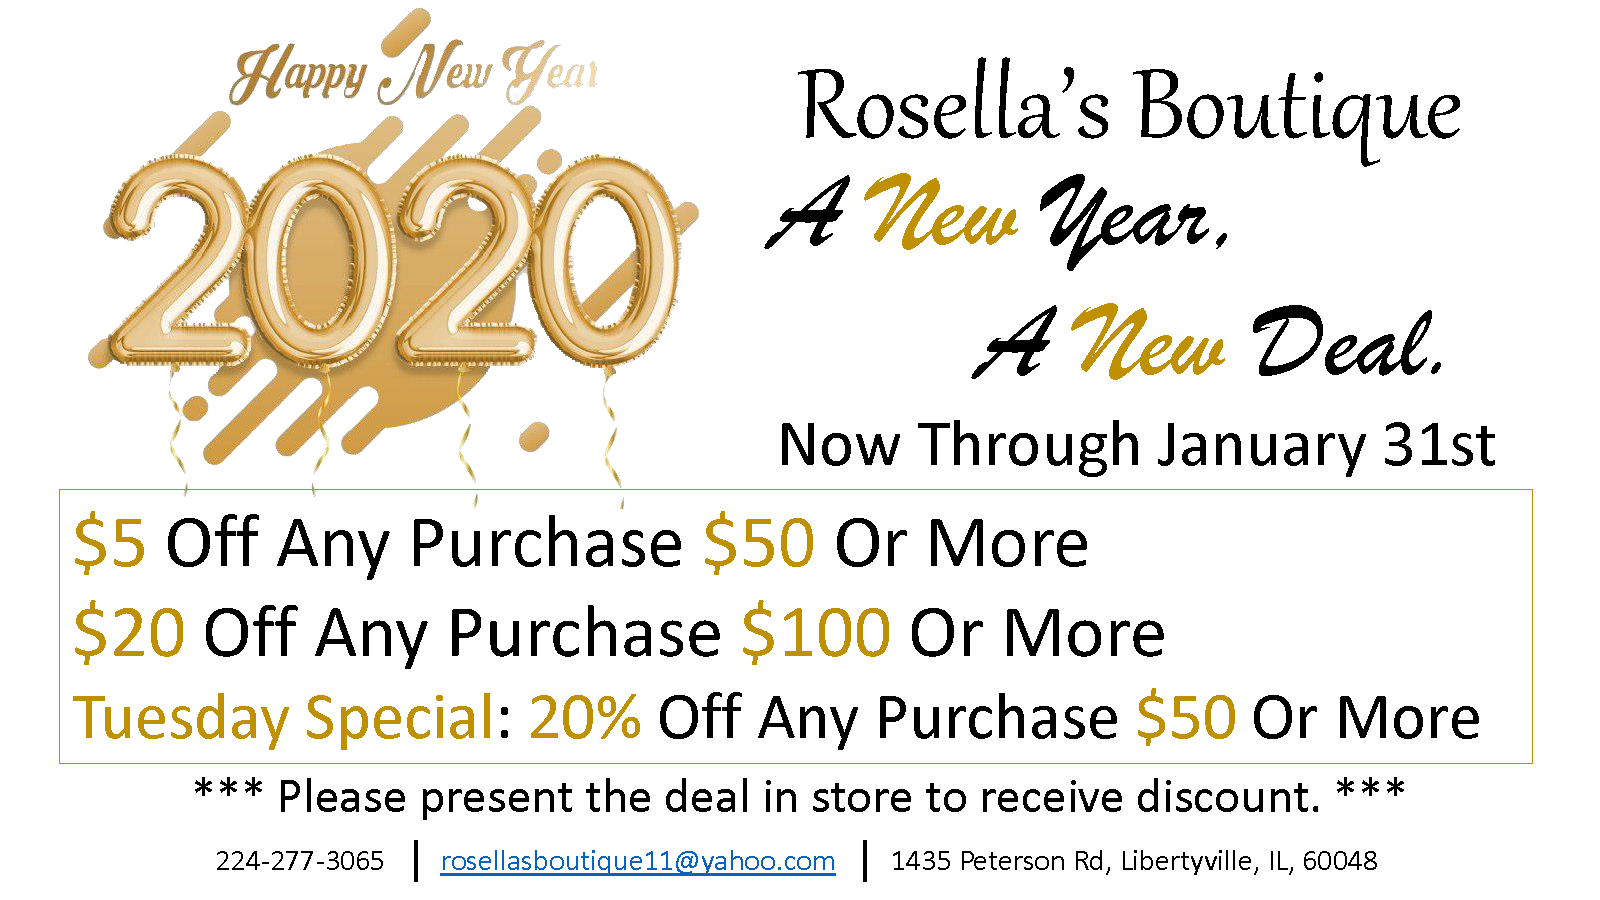 New Year's Sale at Rosella's Boutique